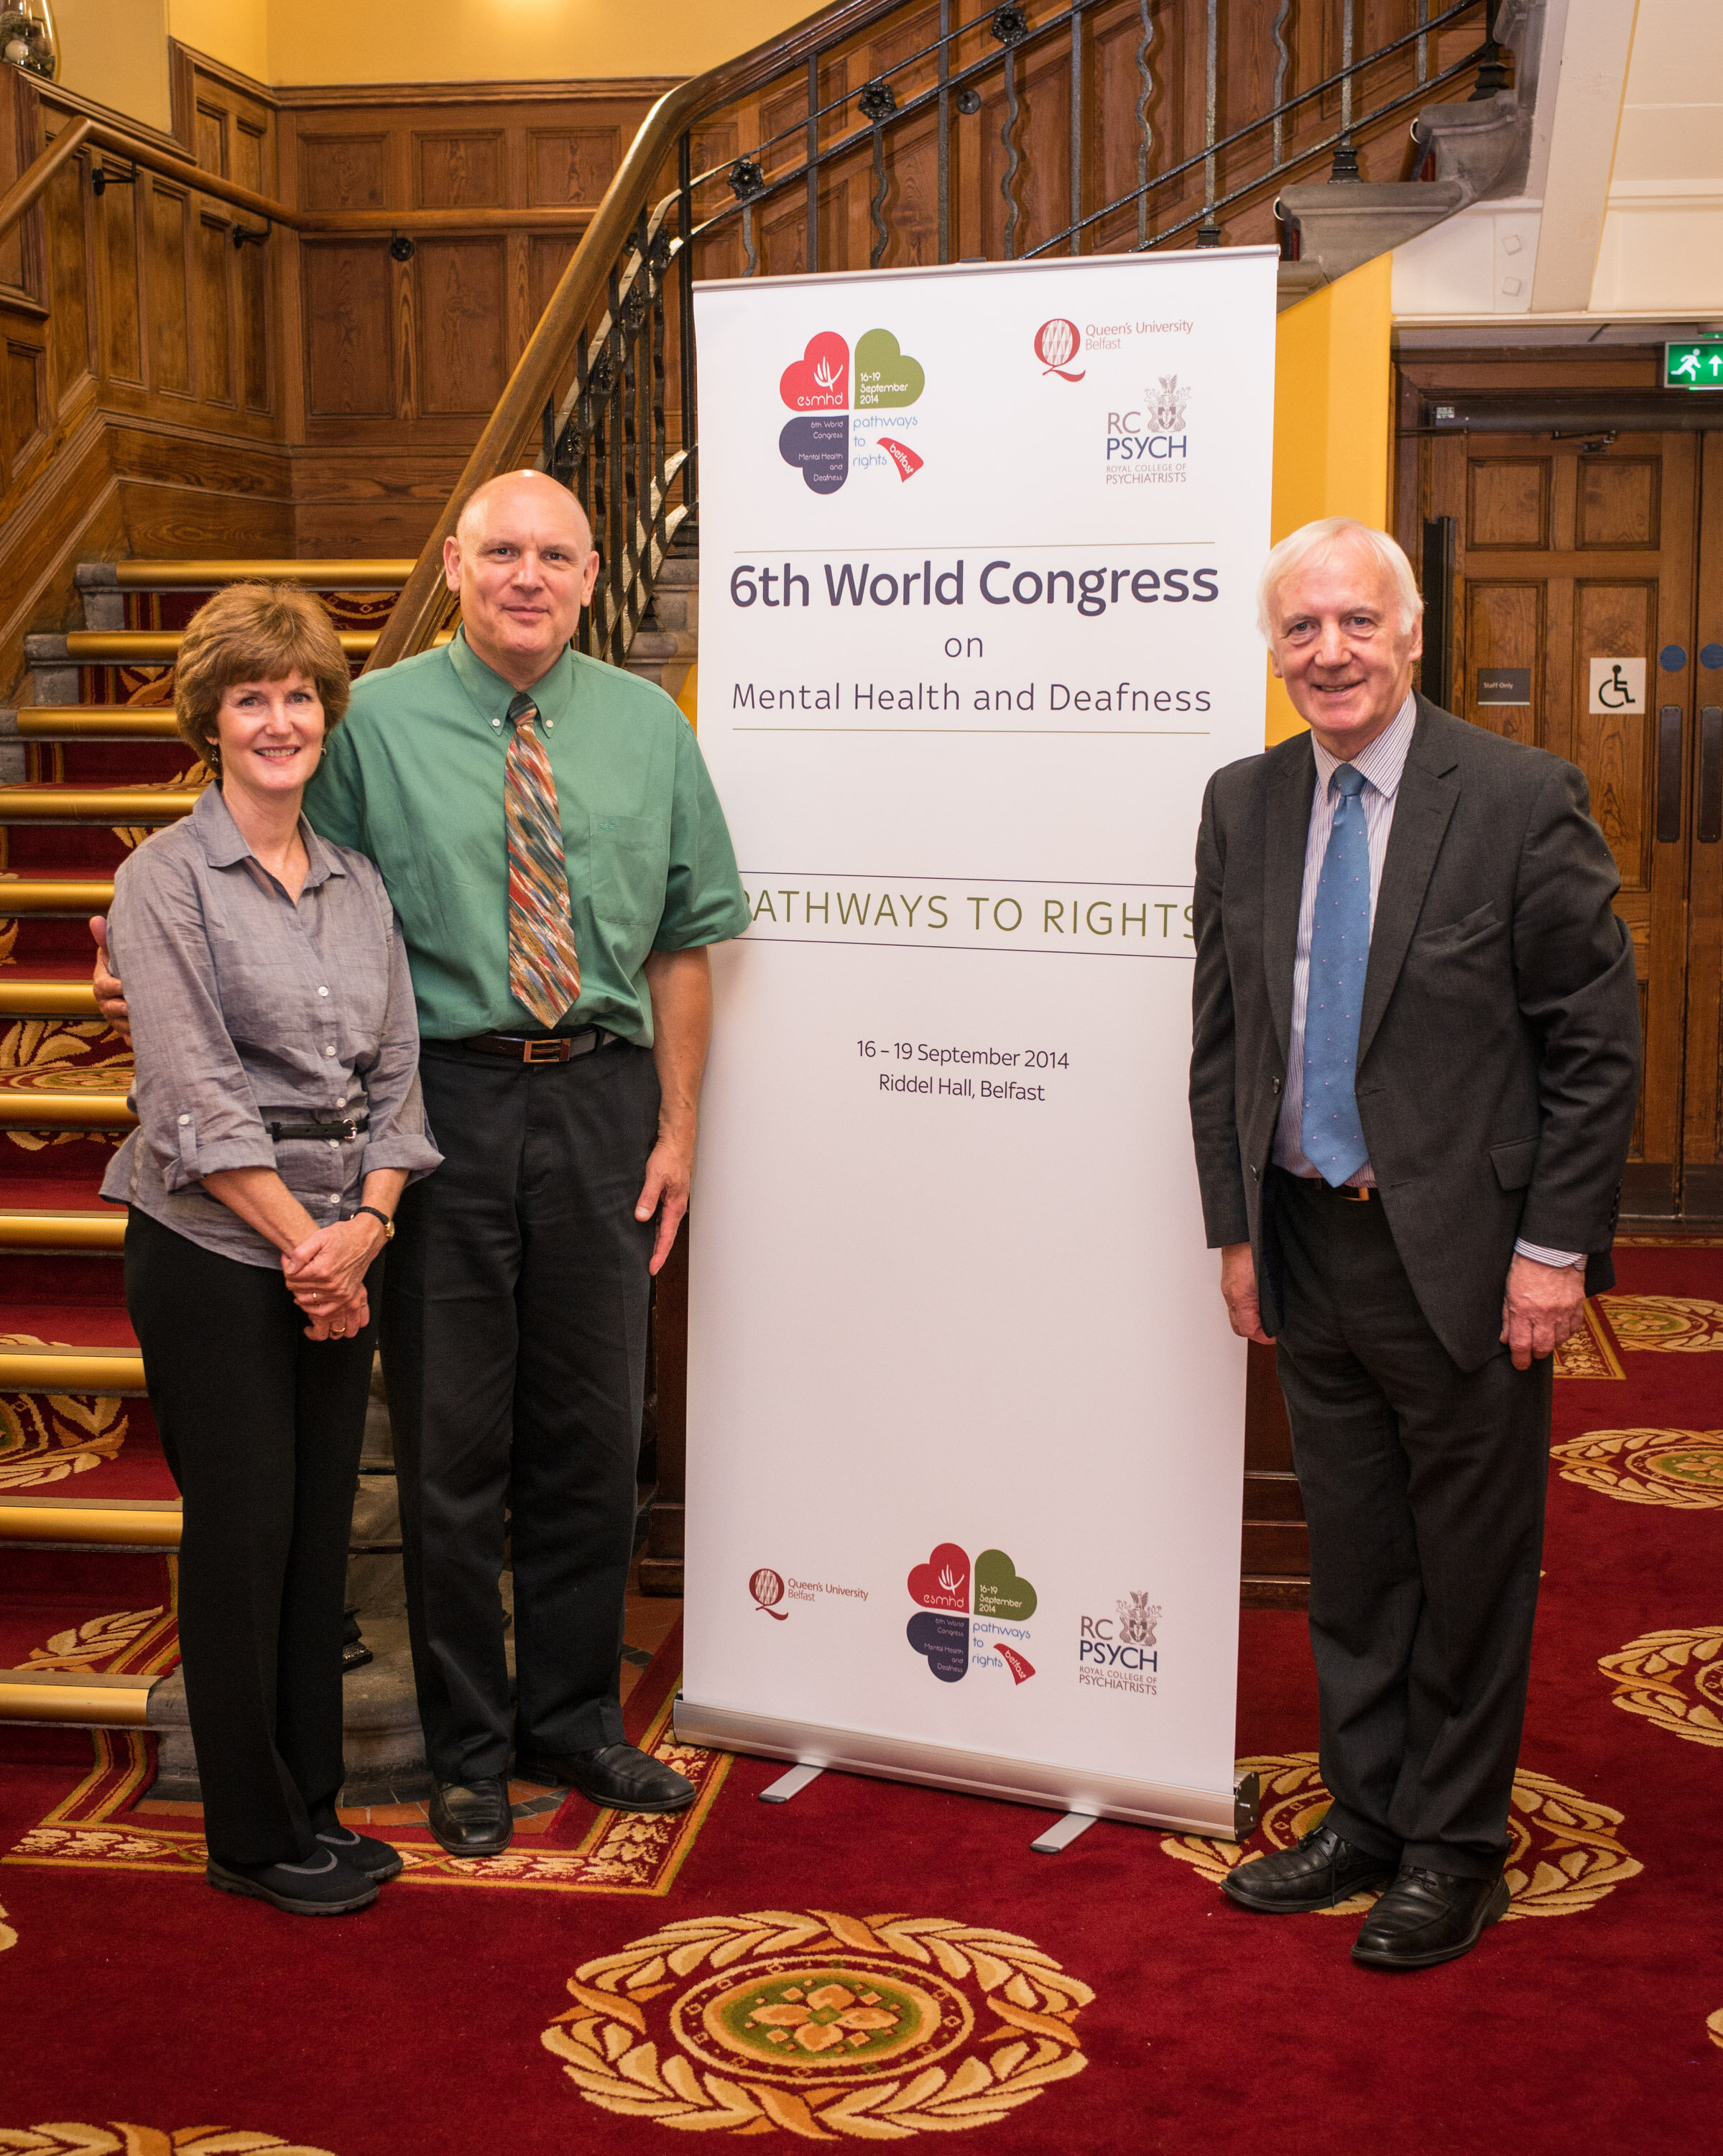 Michael Schwartz (Second from the left) with his wife, Trisha Schwartz (far left) and Brian Symington (right), a tireless advocate for the Deaf community in the UK at the Sixth World Congress on Mental Health and Deafness in Belfast, Northern Ireland, in October 2014.